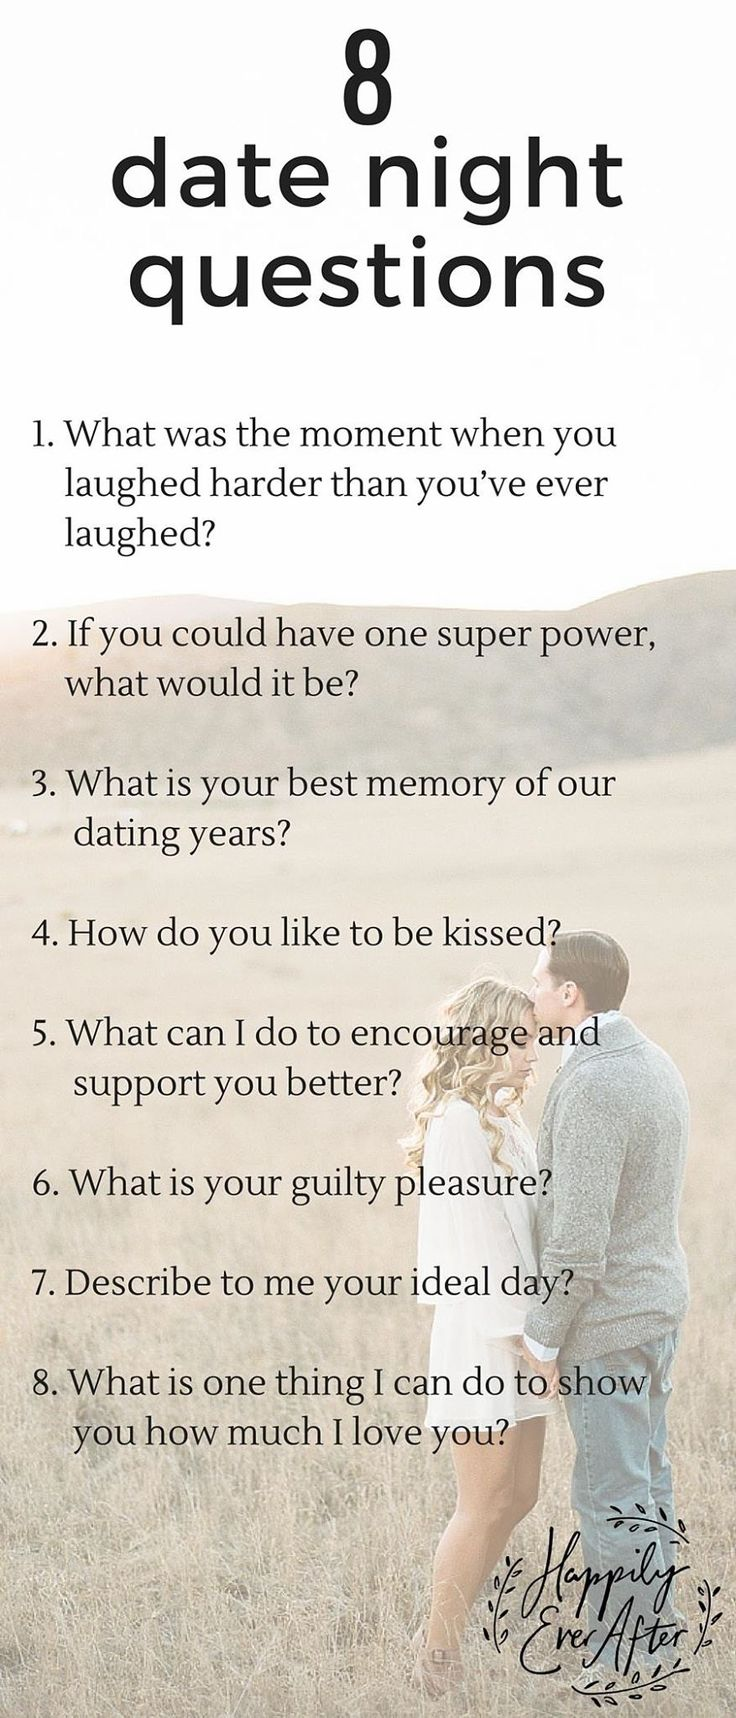 150 Extra questions to ask a girl